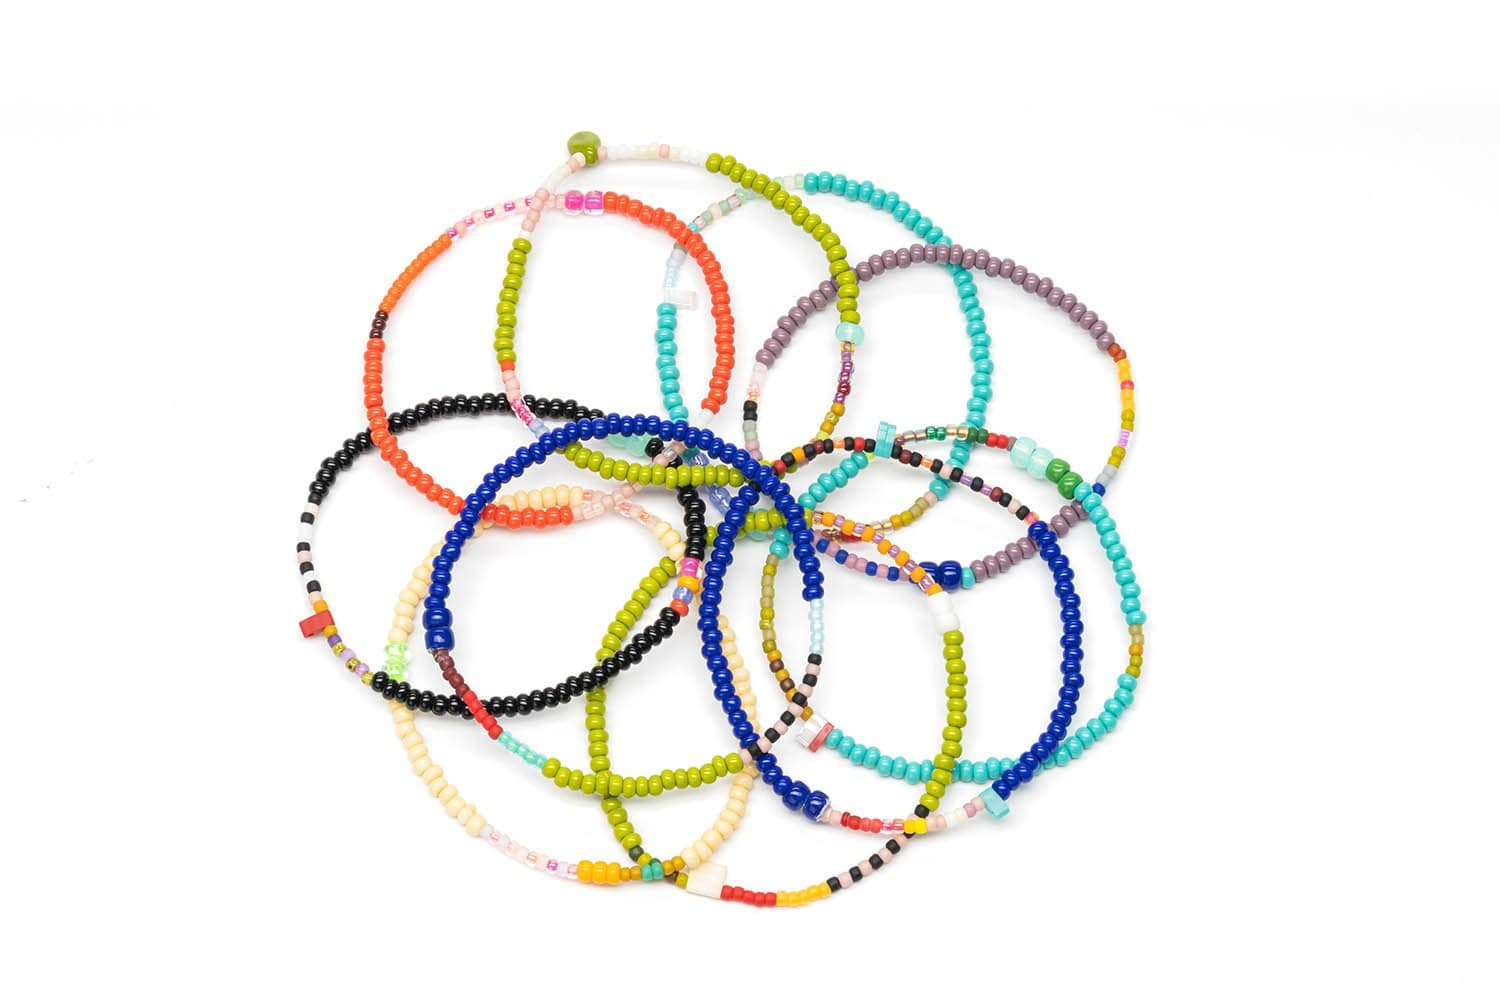 Jess Barcelona - Bracelet - Multicolored